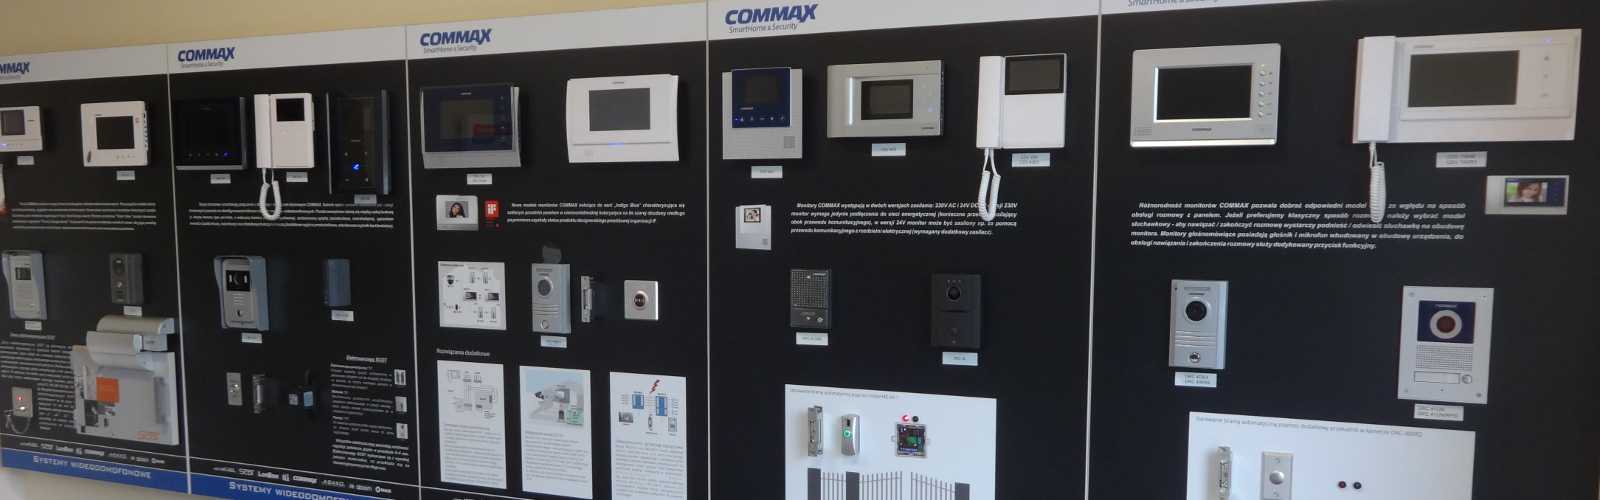 Commax Showroom 1